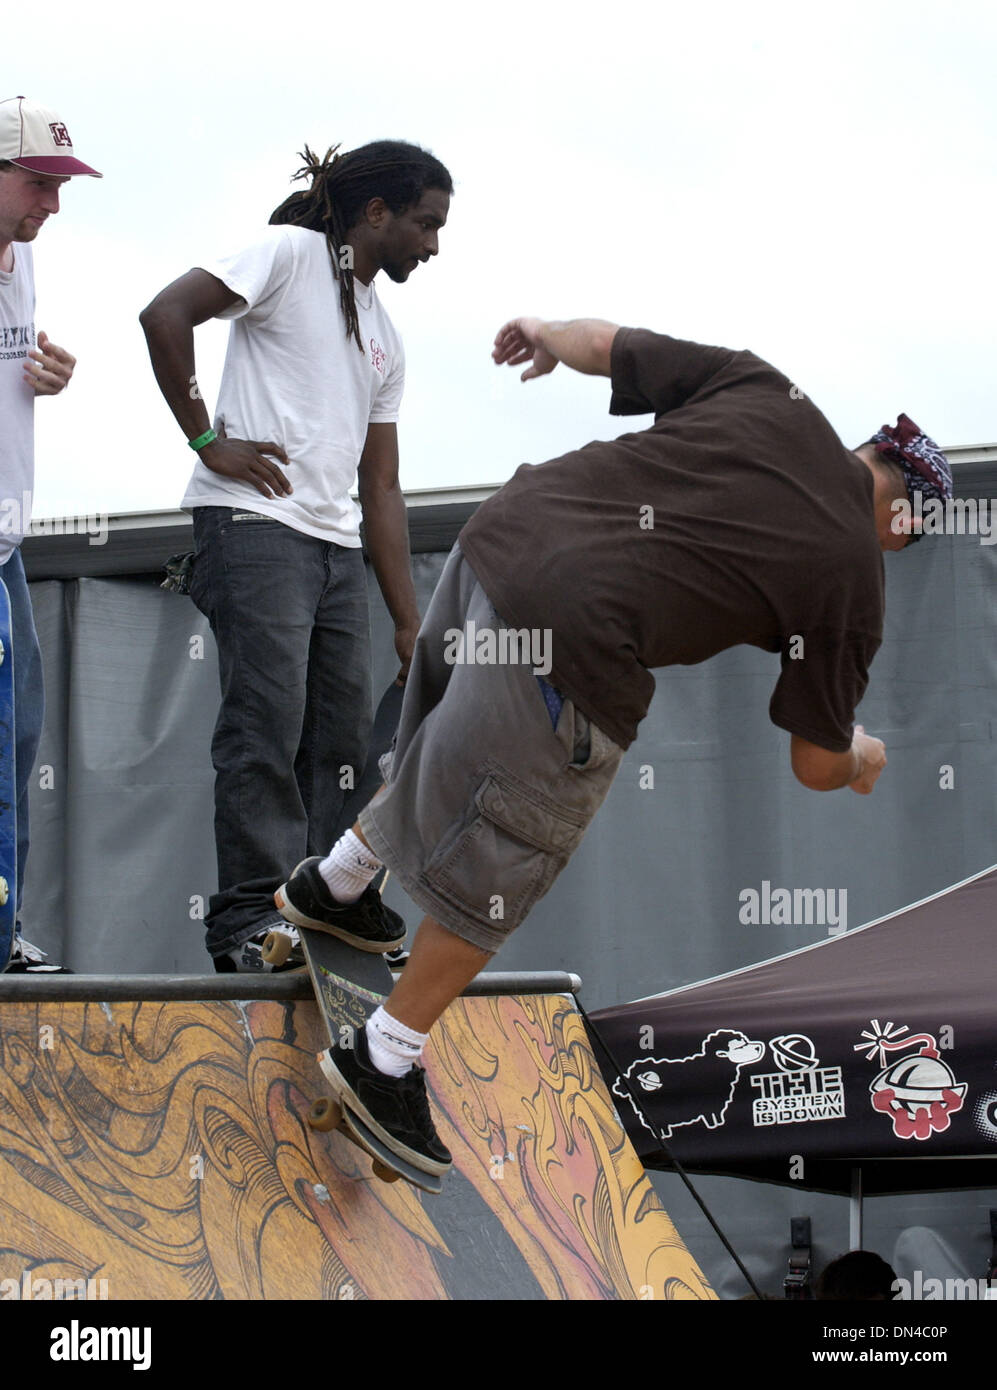 Jun 27, 2006; Raleigh, NC, USA; A person rides a skateboard on a half pipe ramp at the 2006 Vans Warped Tour makes a stop at Alltel Pavilion located in Raleigh.  Mandatory Credit: Photo by Jason Moore/ZUMA Press. (©) Copyright 2006 by Jason Moore - Stock Image